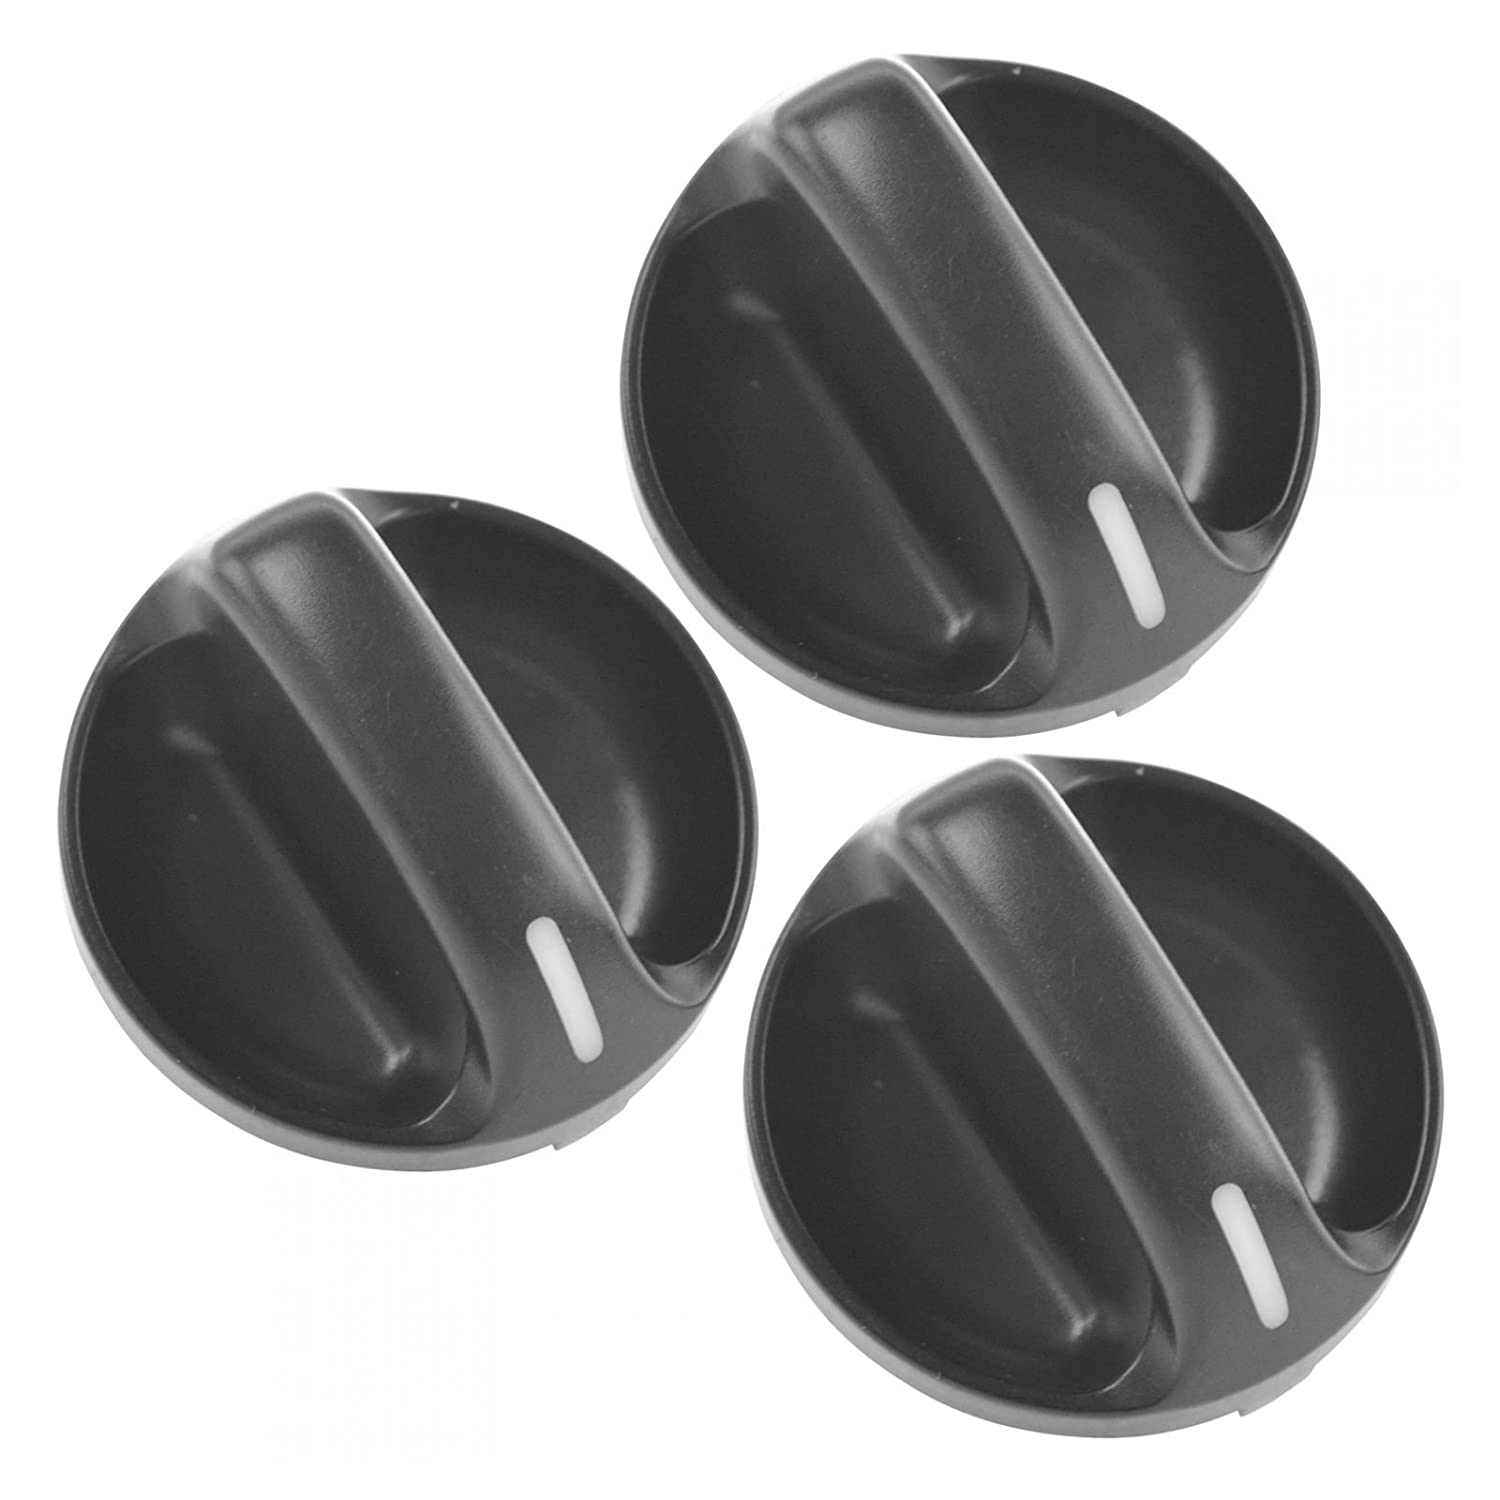 Heater & A/C Control Knob Black Set of 3 for 00-06 Toyota Tundra Brand AM Autoparts